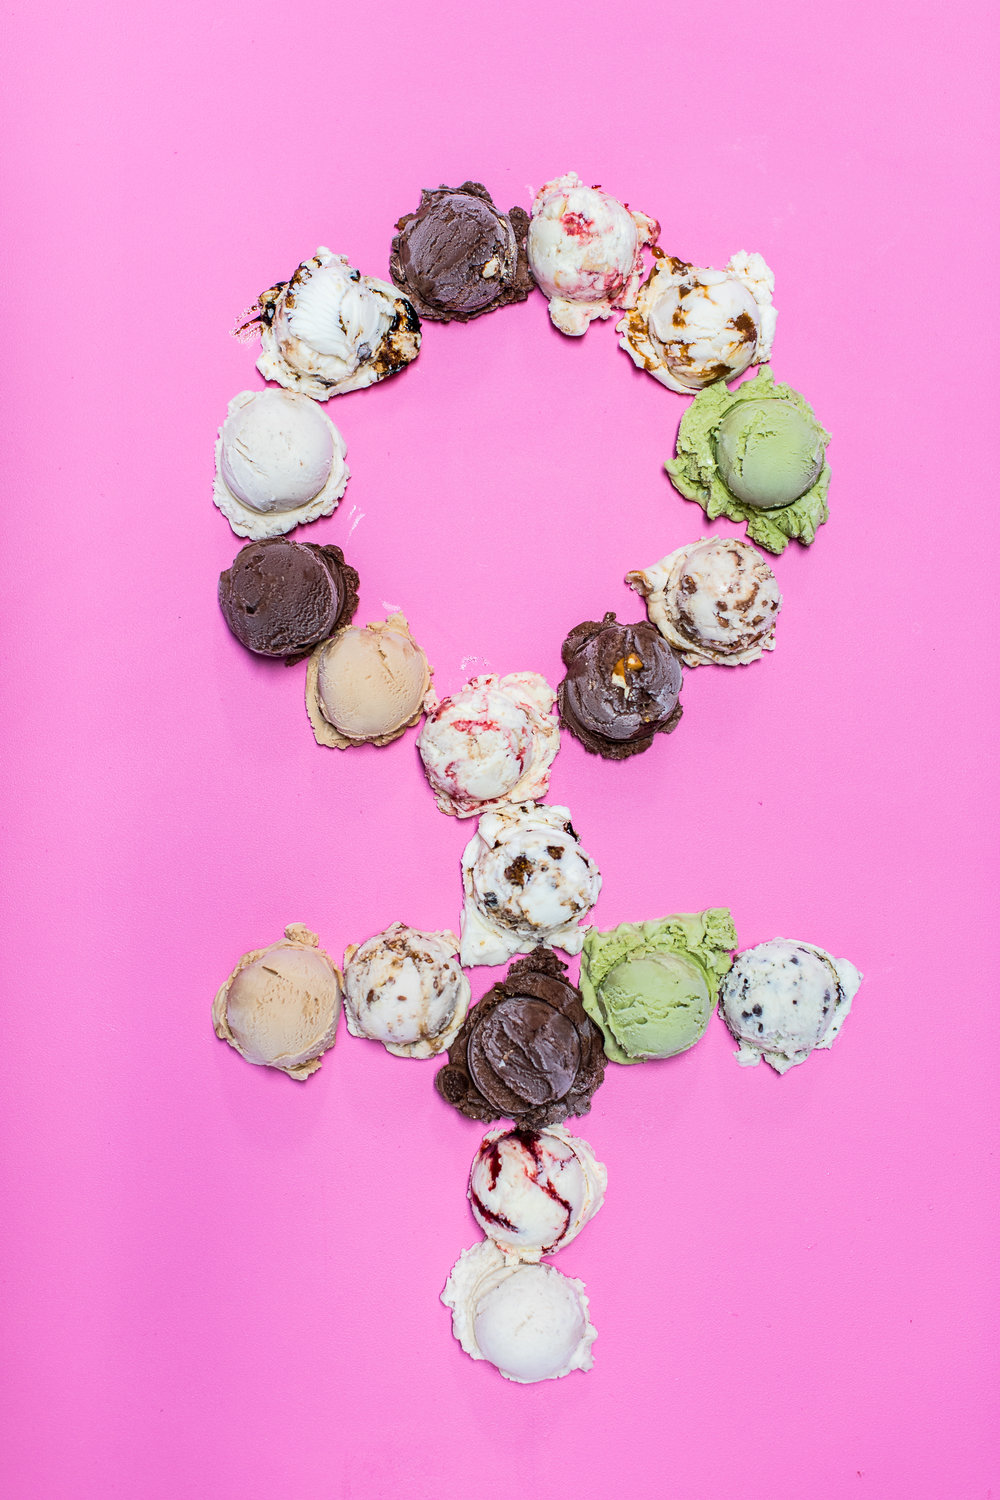 Coolhaus_Scoop Pile-1.JPG